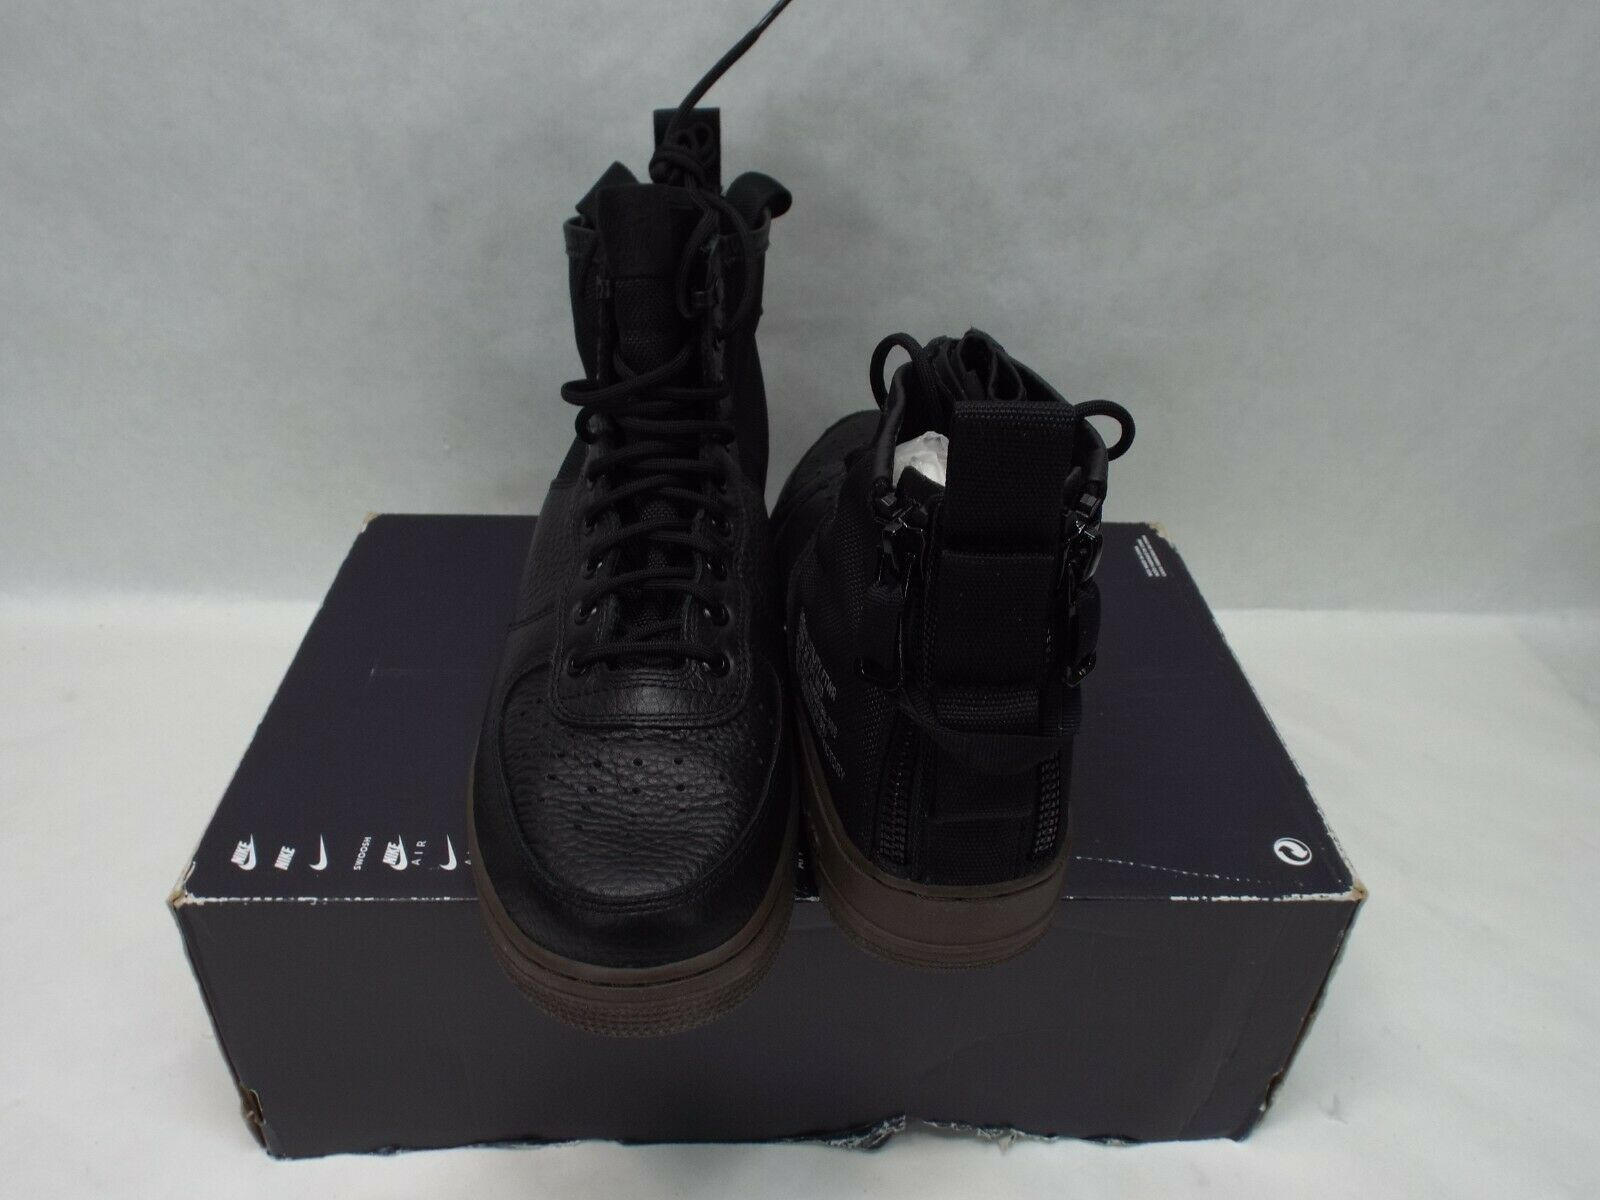 New Mens 10.5 NIKE SF AF1 Mid Military Boots Boots Boots Black Hazel shoes  160 917753-002 955e0f